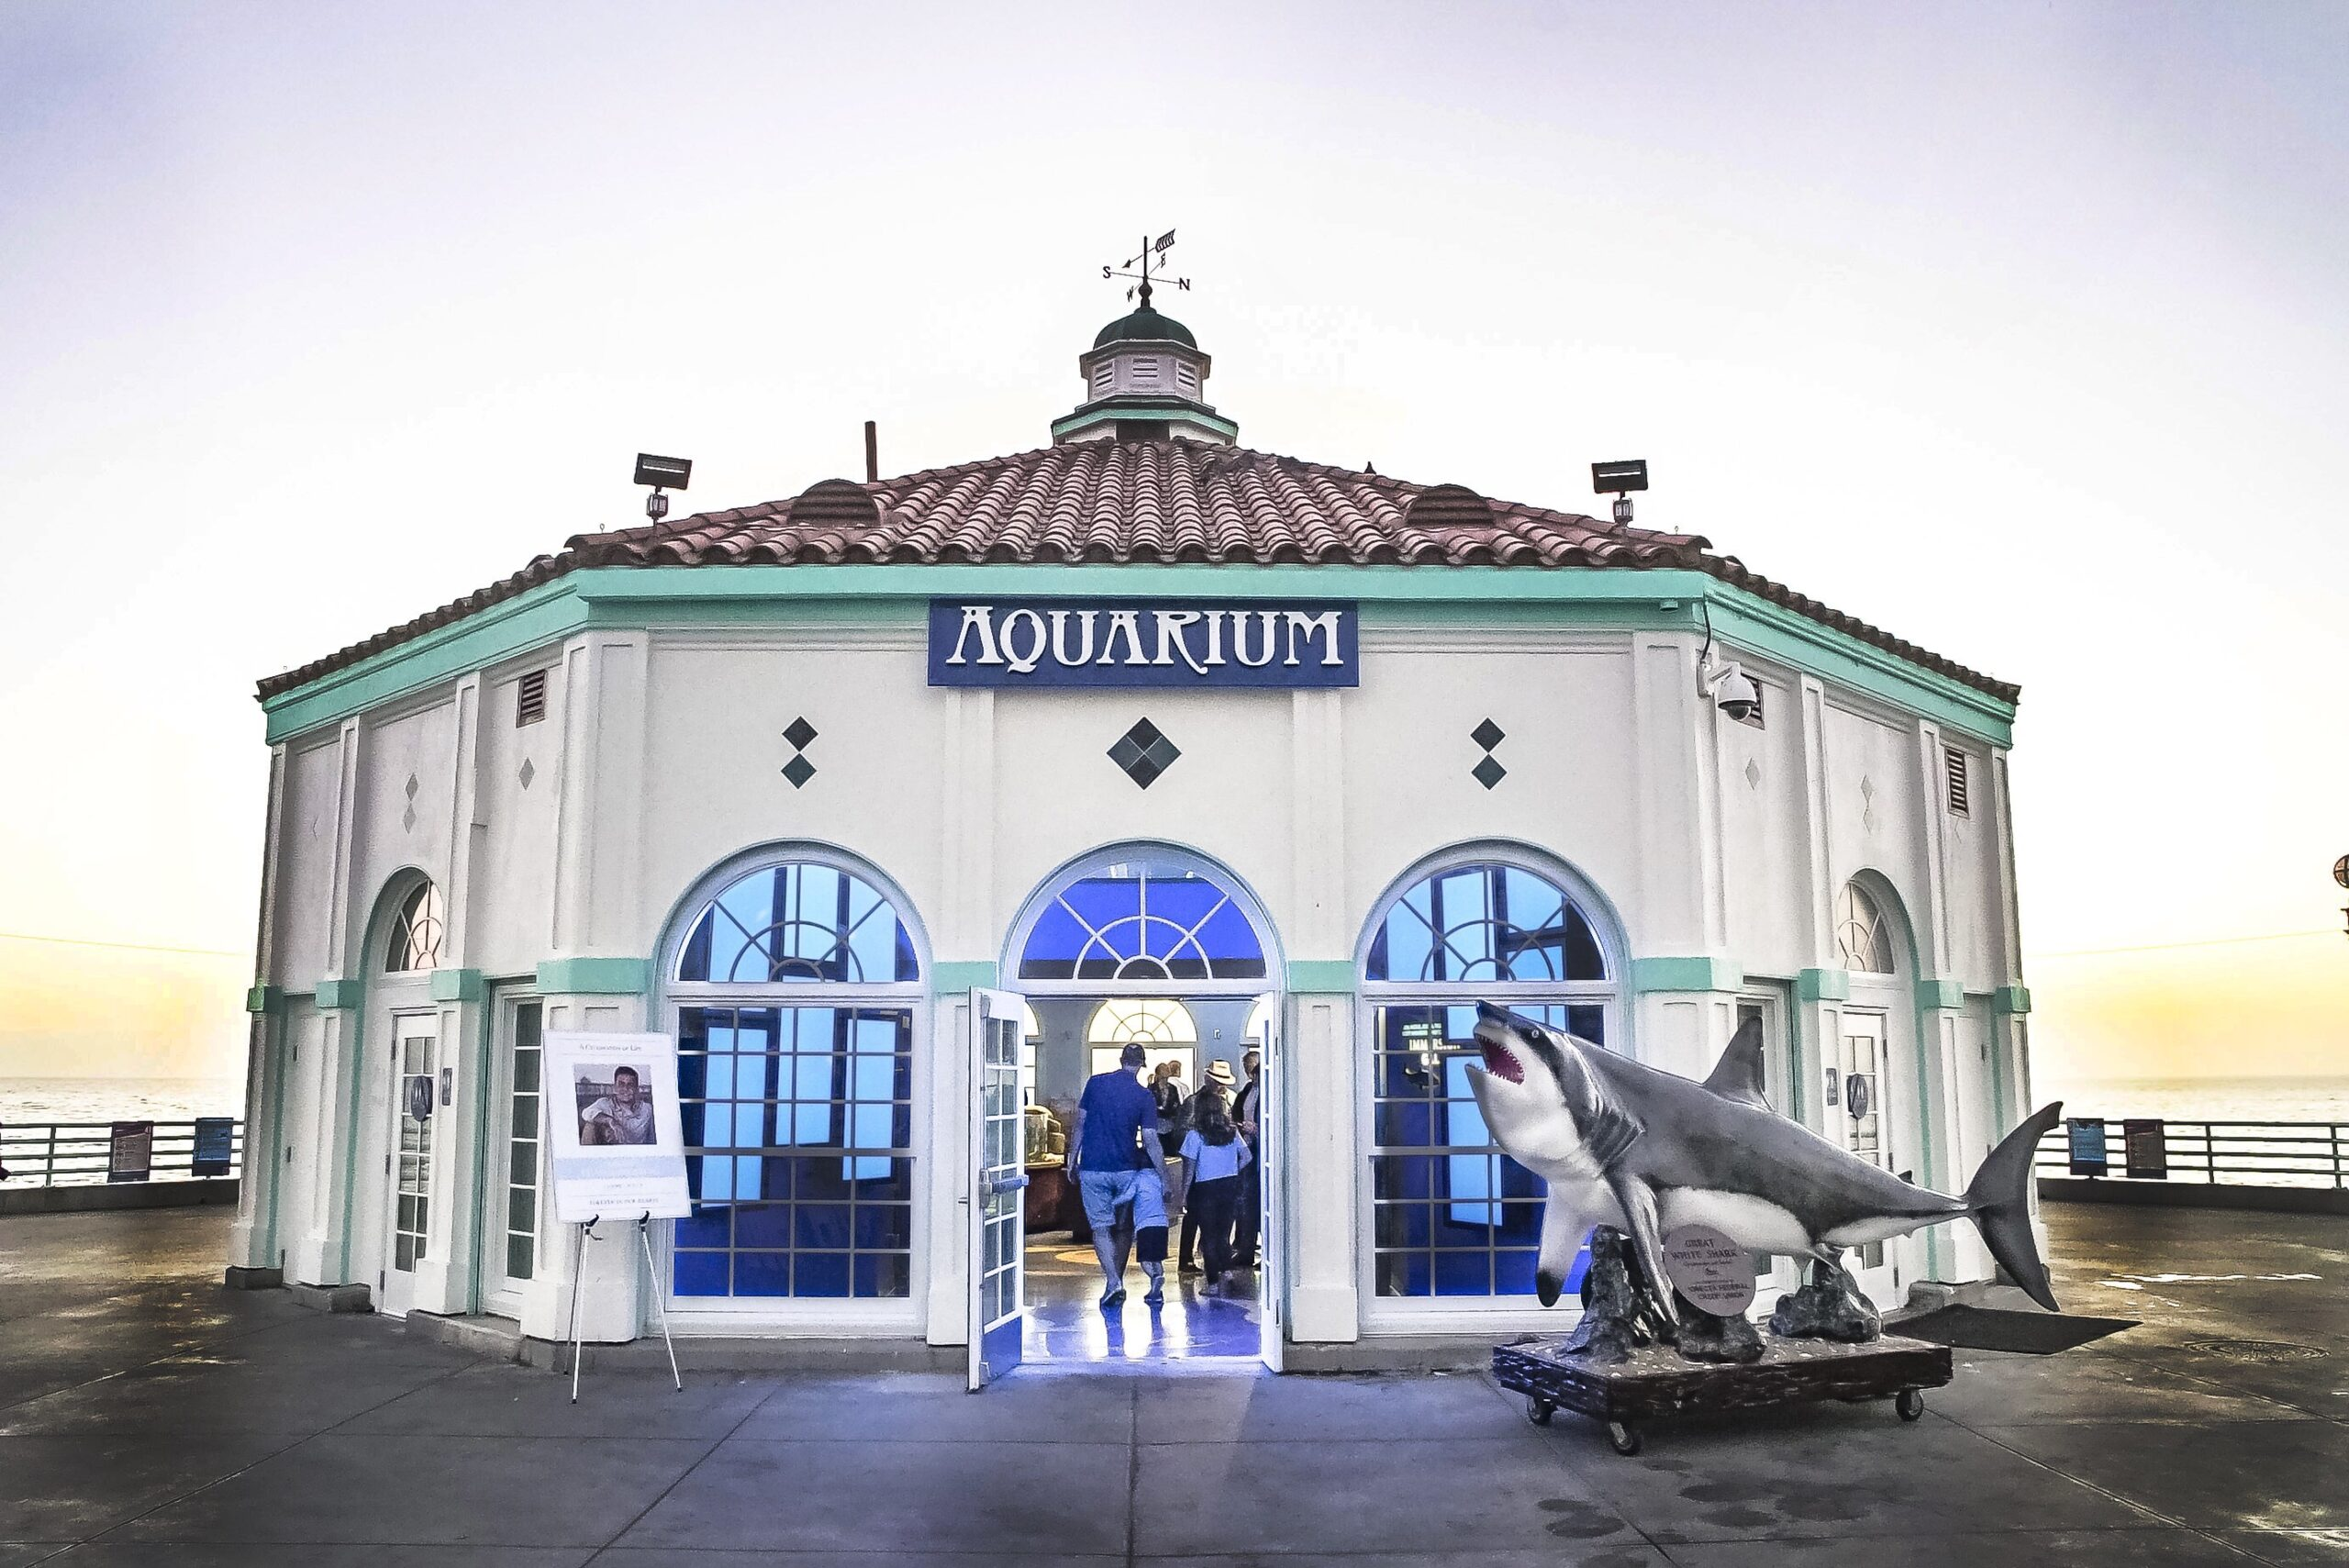 Roundhouse Aquarium - Roundhouse Aquarium Teaching Center - Manhattan  Beach, California